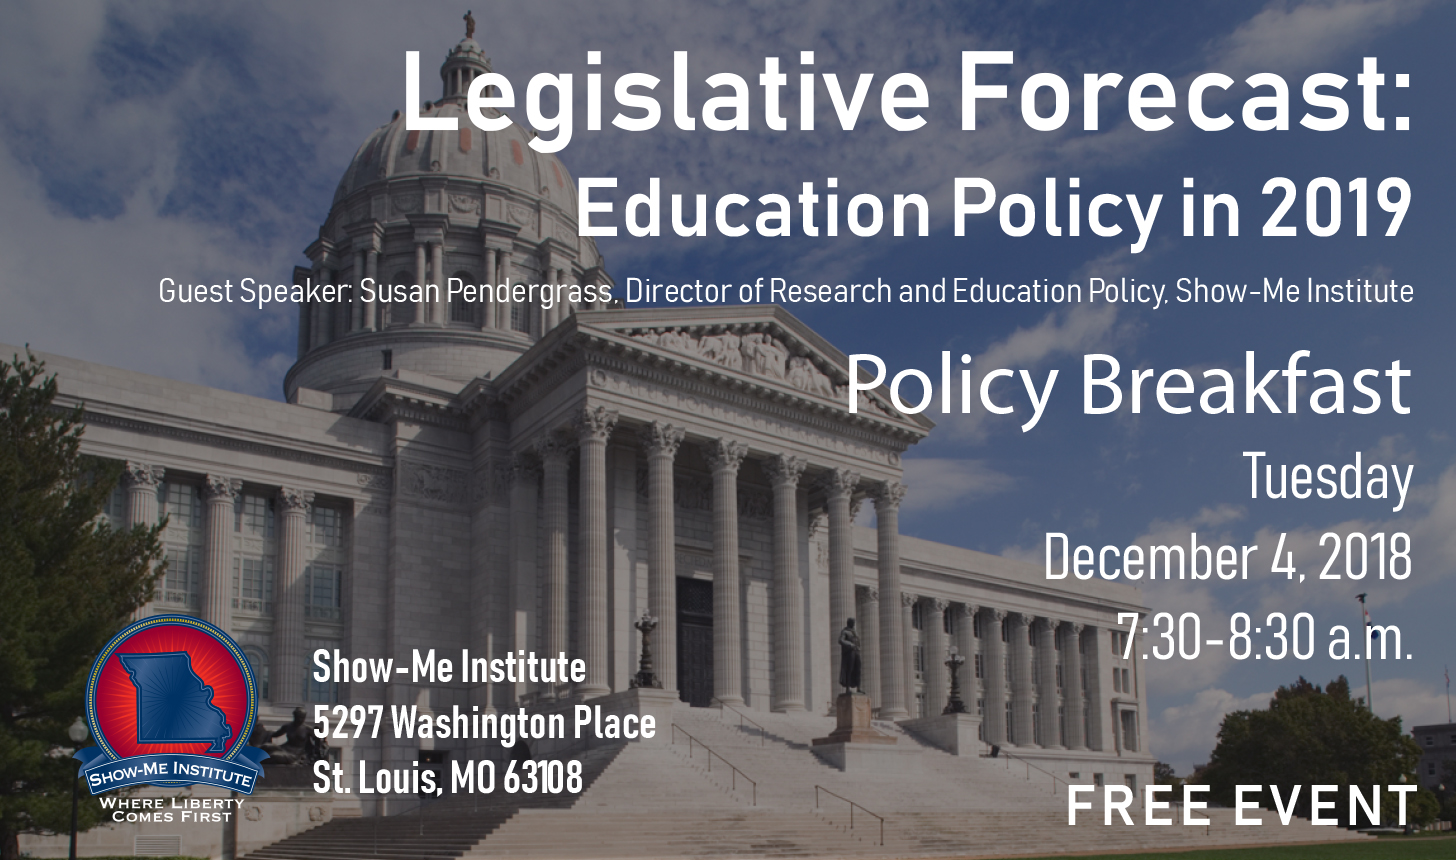 Rescheduled St. Louis Policy Breakfast - Legislative Forecast: Education Policy in 2019